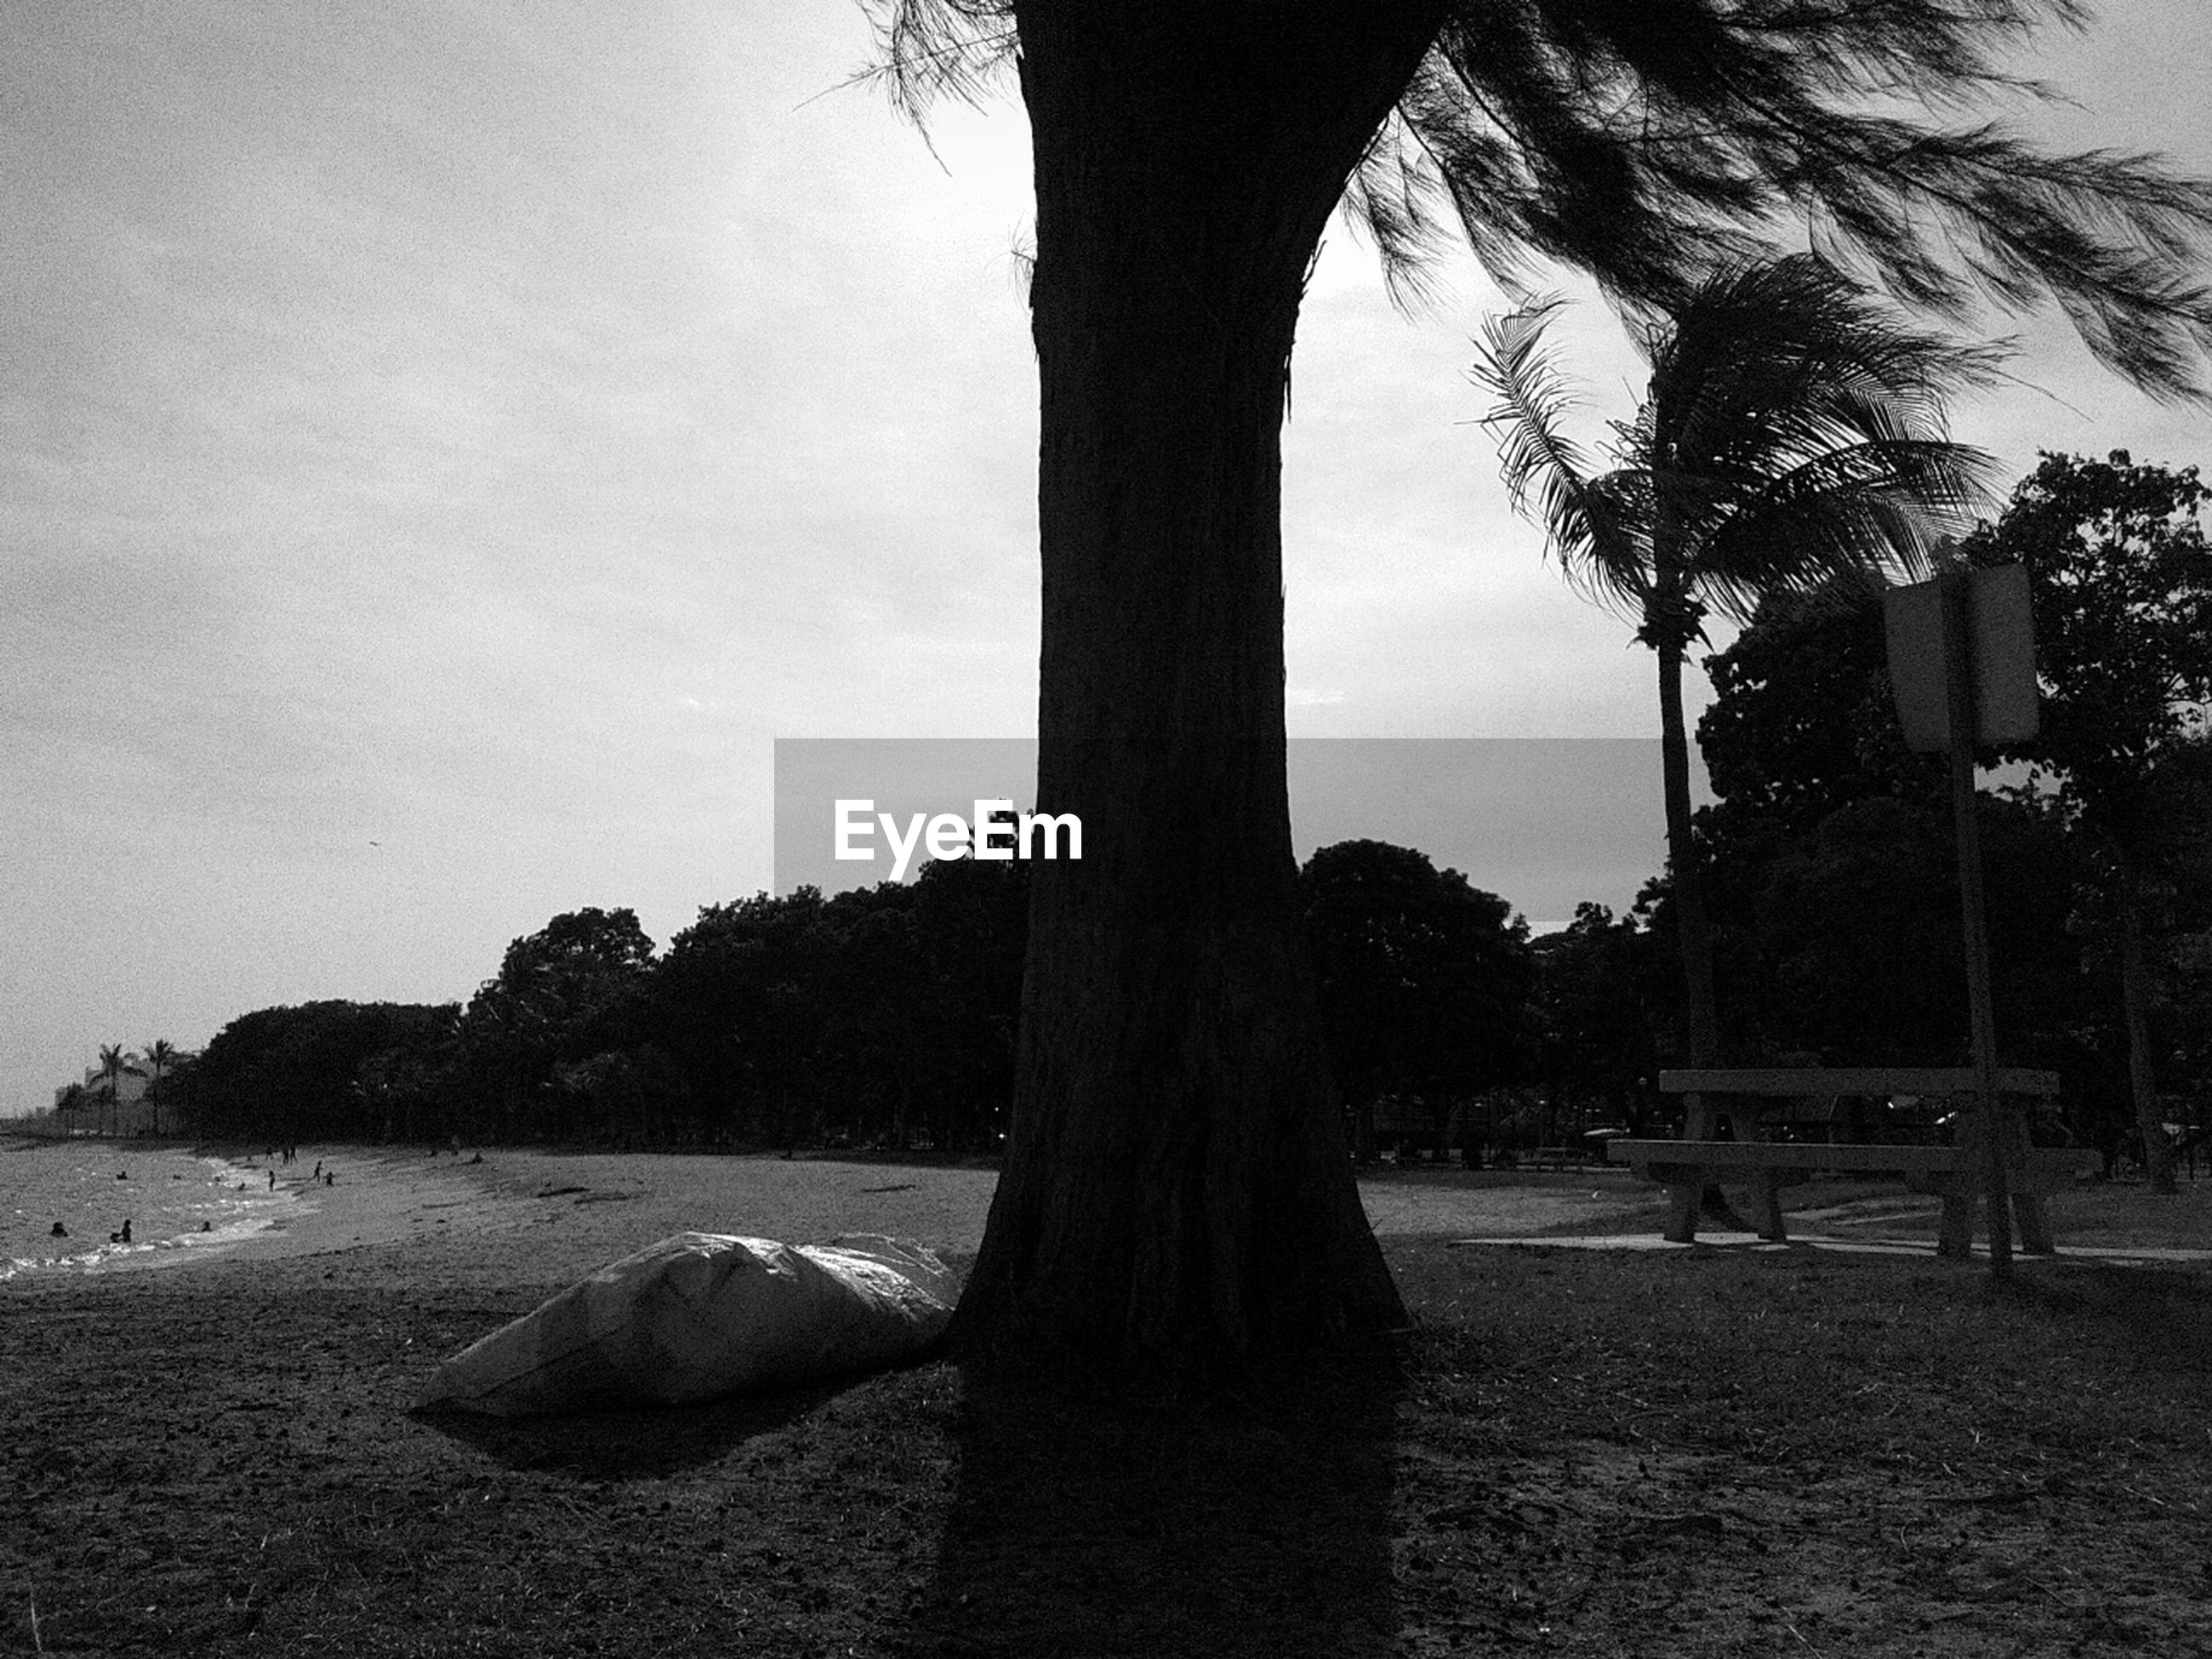 tree, tree trunk, tranquil scene, tranquility, palm tree, growth, scenics, park - man made space, nature, beauty in nature, sky, remote, solitude, outdoors, day, non-urban scene, park, shore